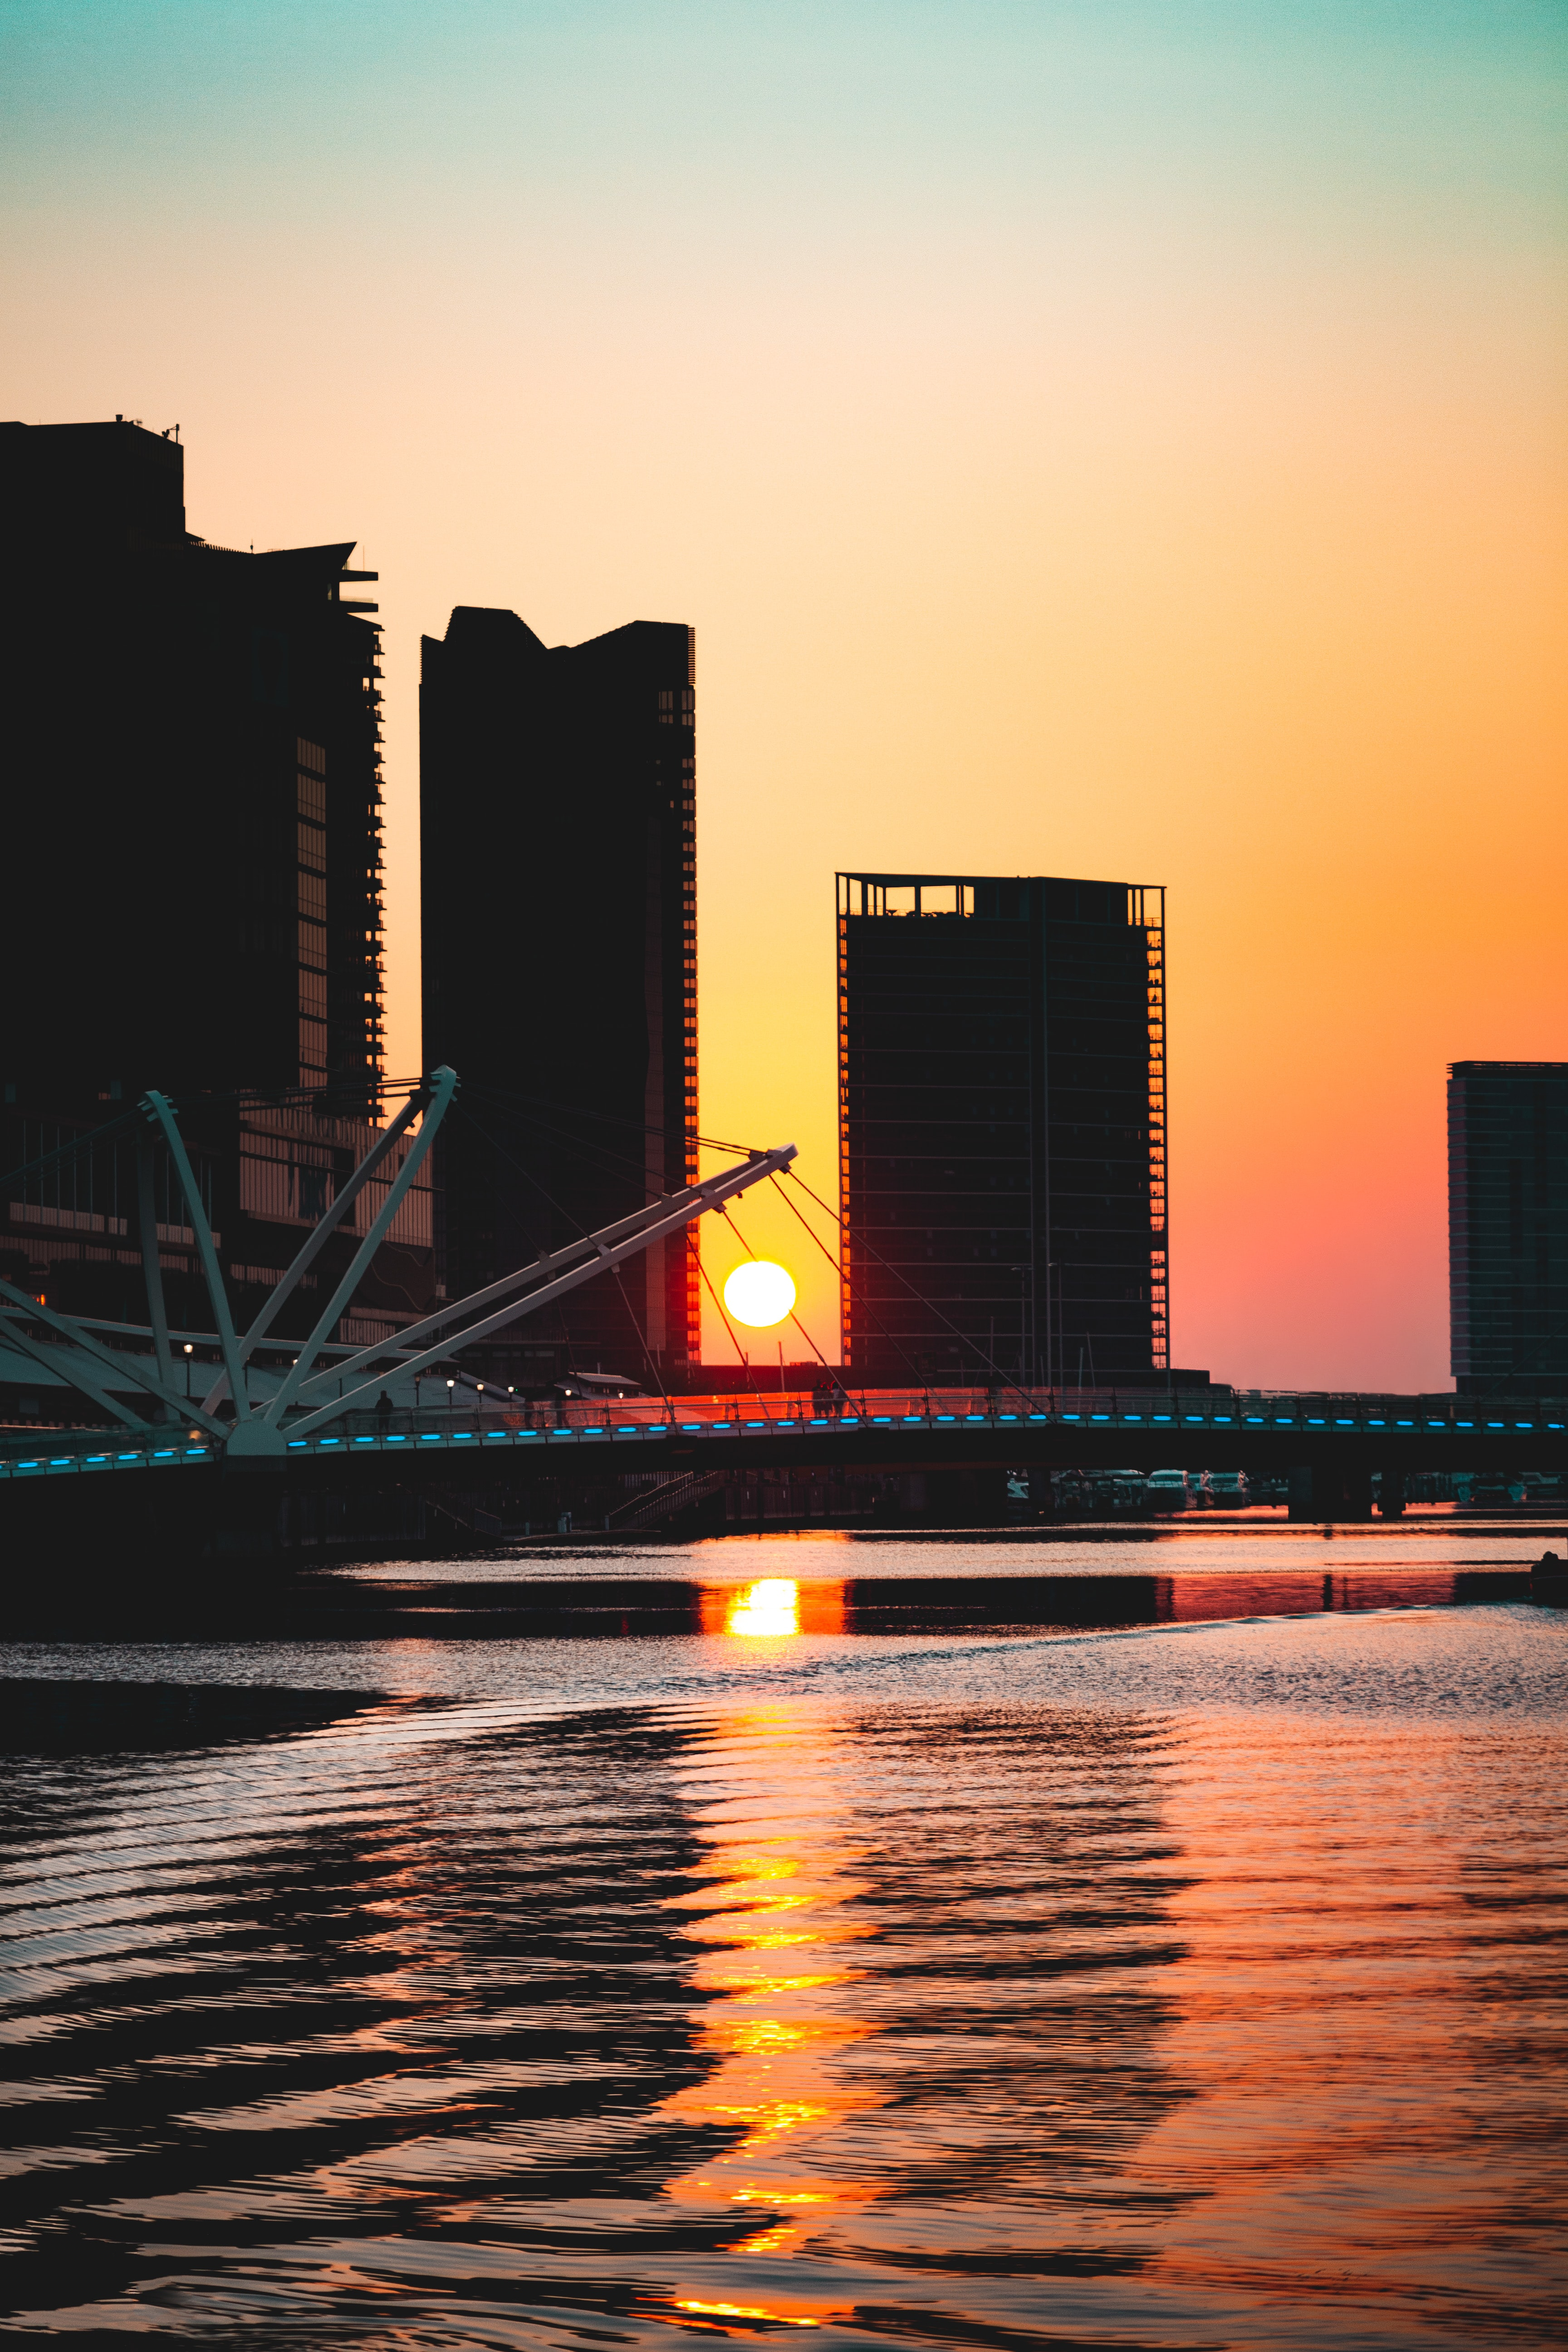 land bridge and buildings during sunset